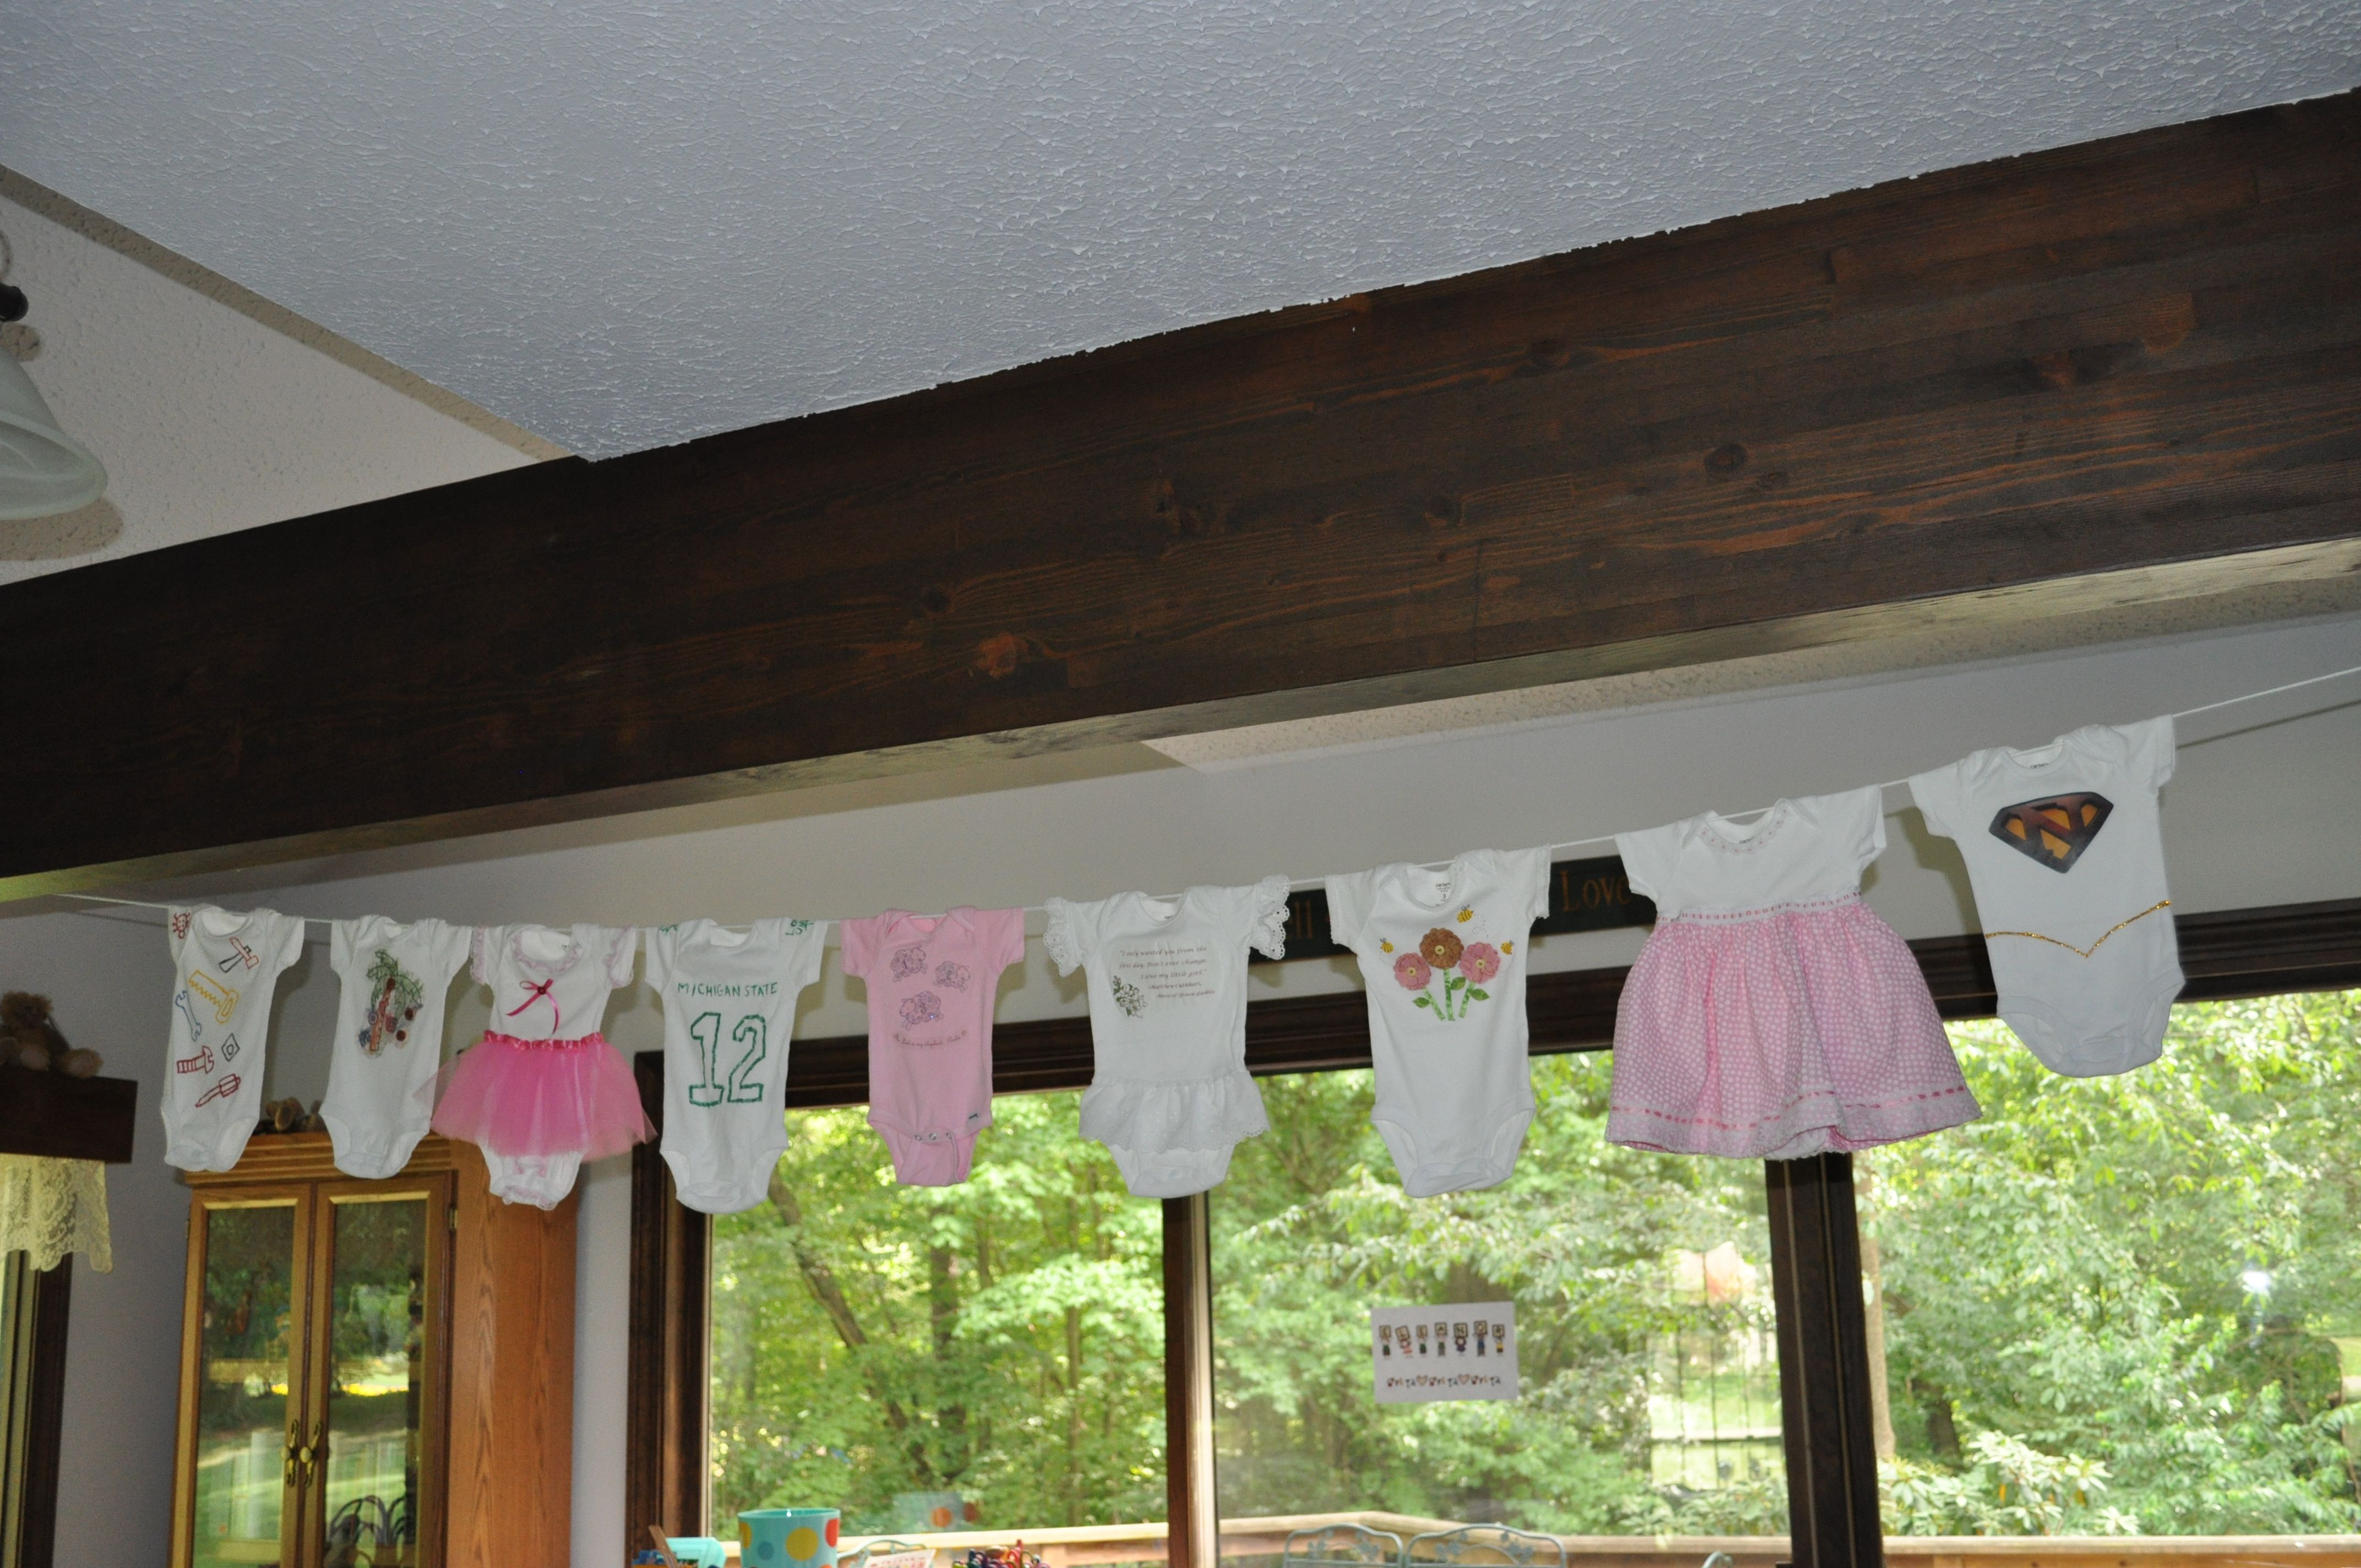 Window decoration for kindergarten  mail onesies for close friends and family to decorate before the